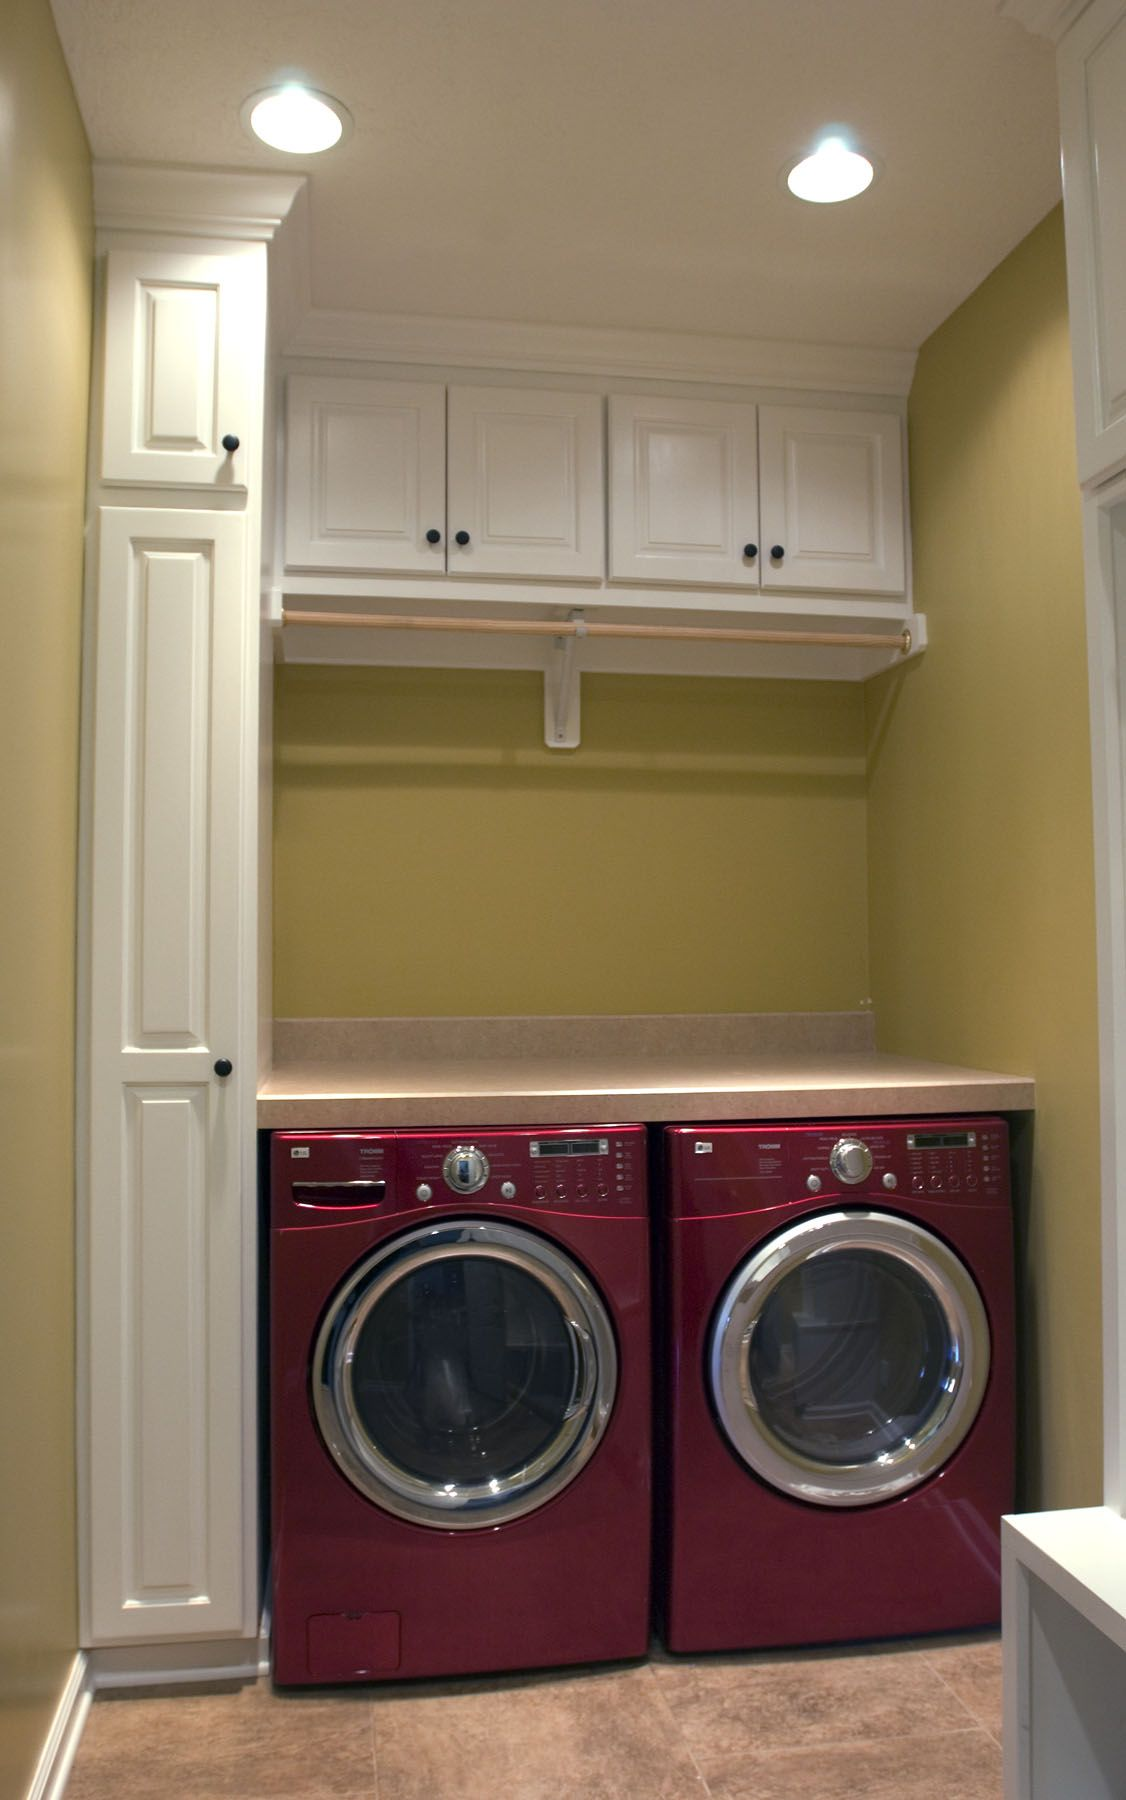 Small laundry rooms enlarged laundry room new mudroom lockers case - Laundry room designs small spaces set ...